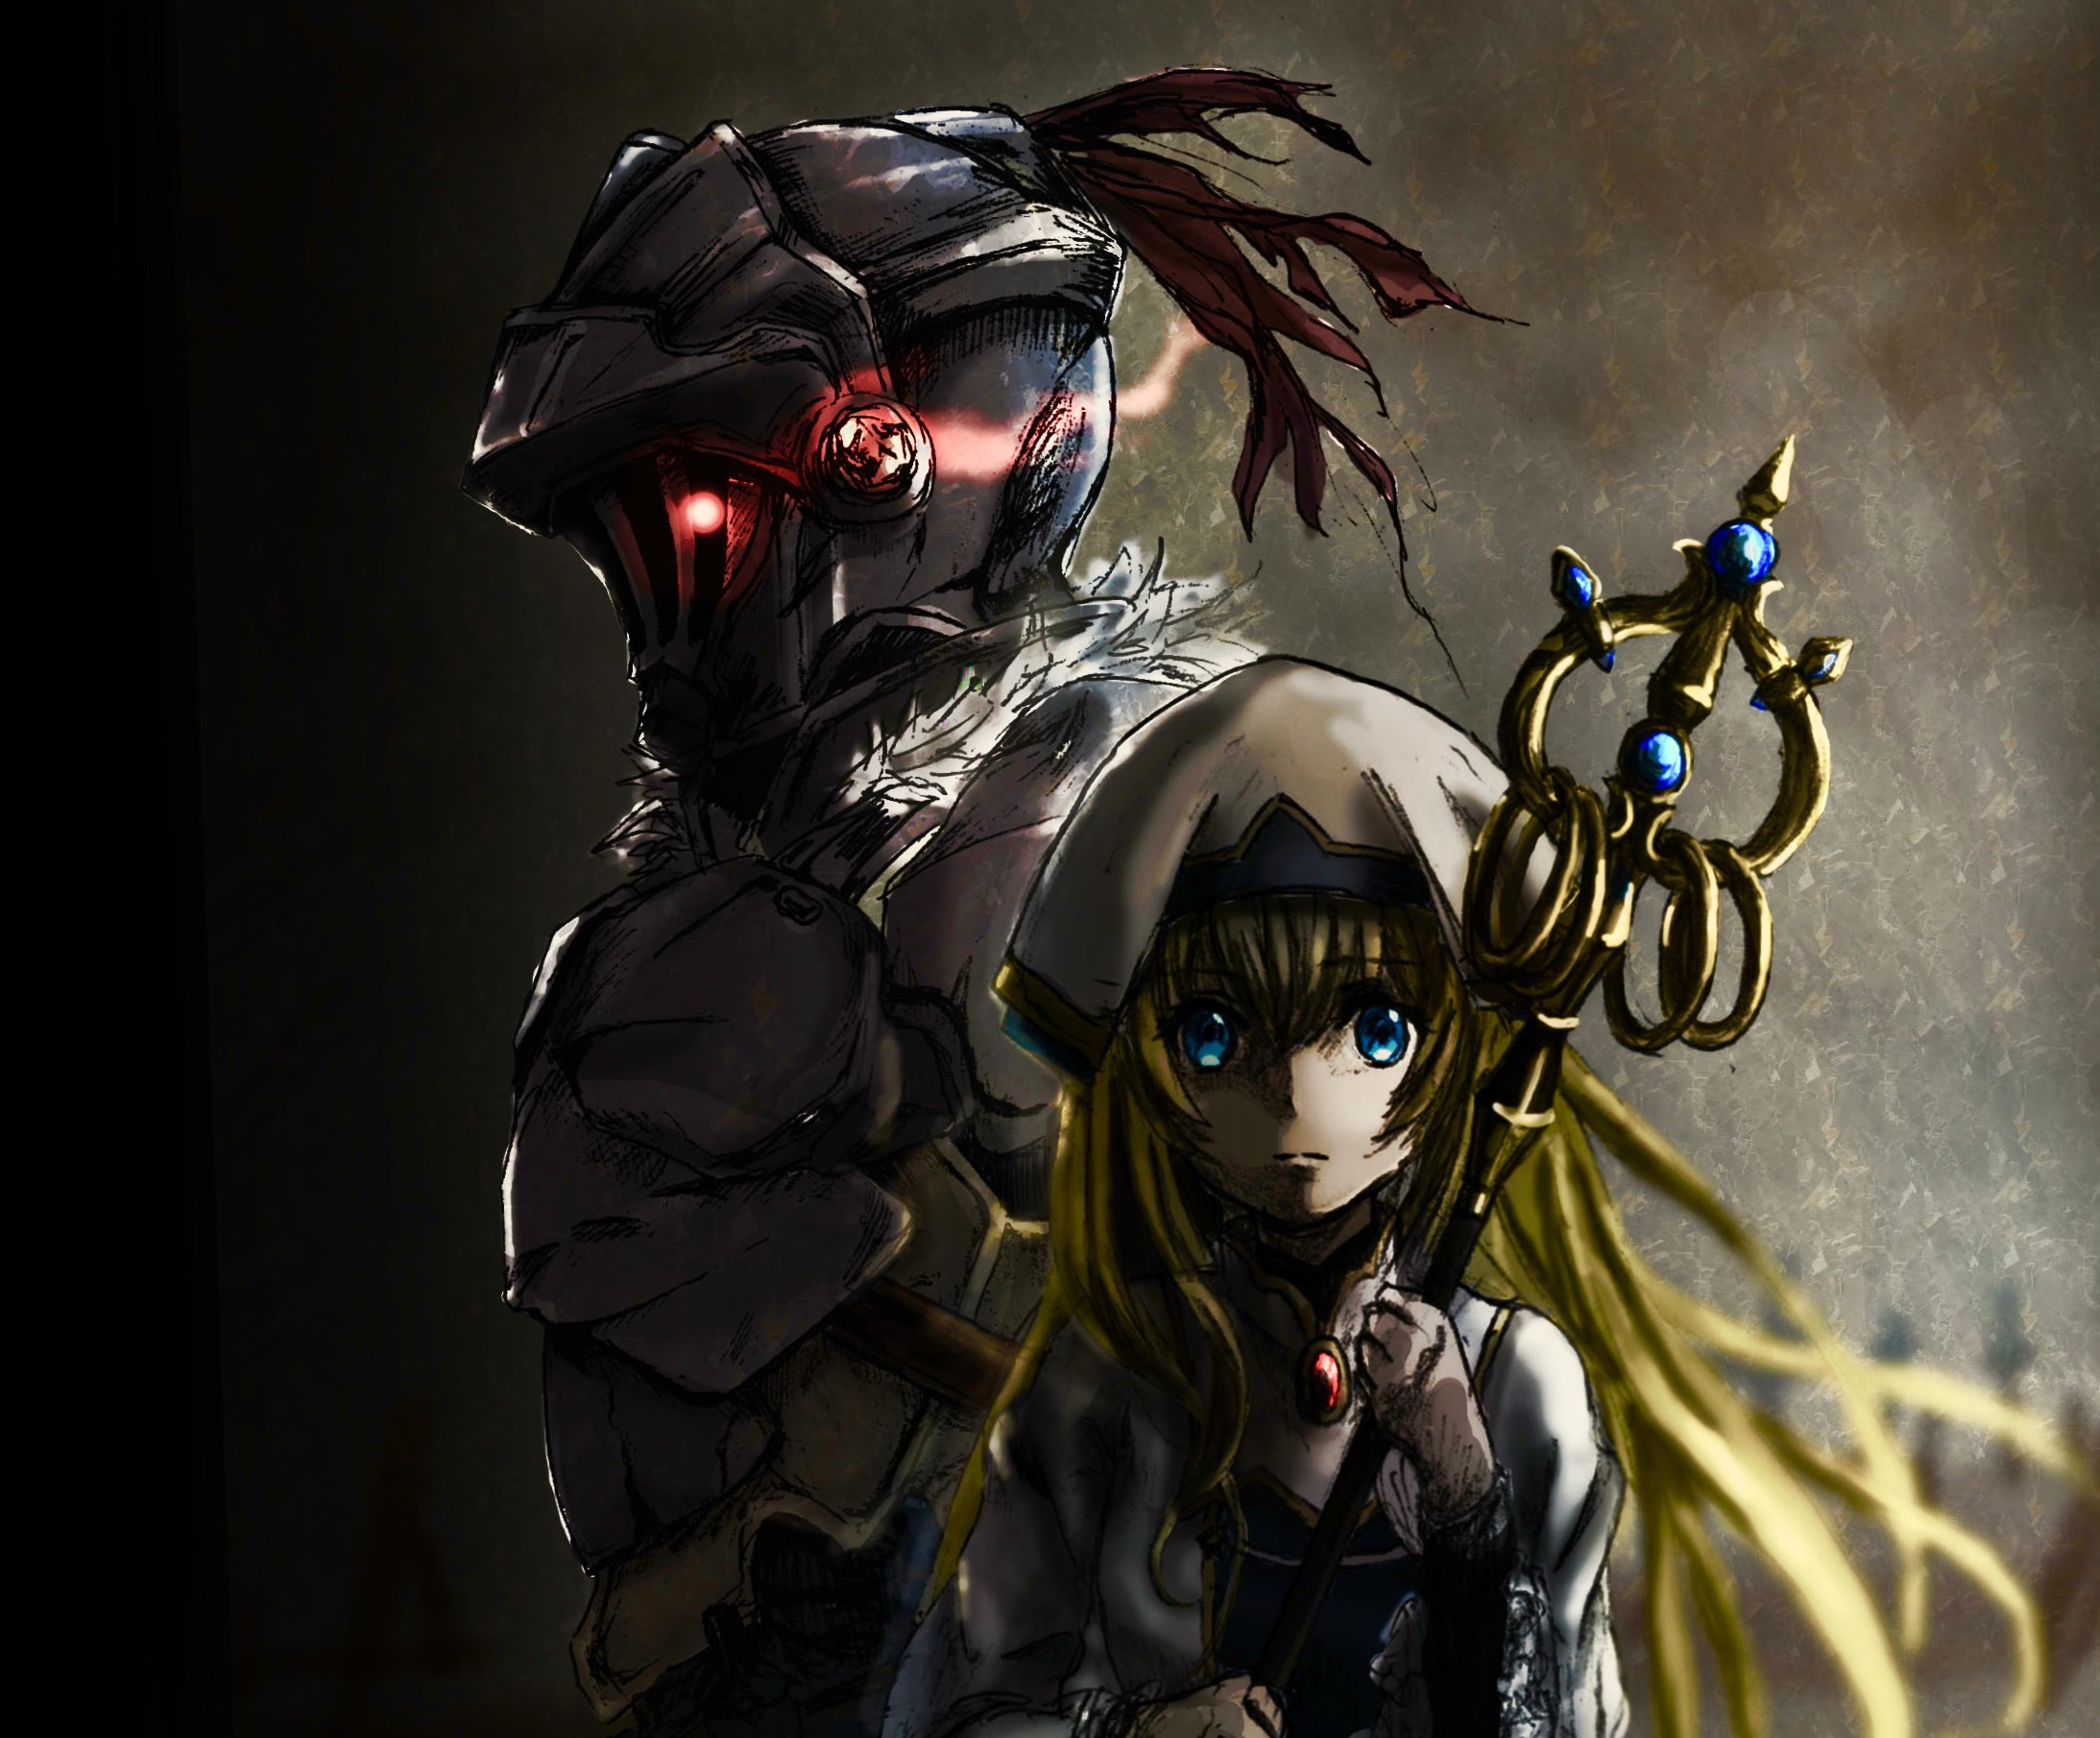 Goblin Slayer Hd Wallpaper Background Image 2187x1810 Id Images, Photos, Reviews